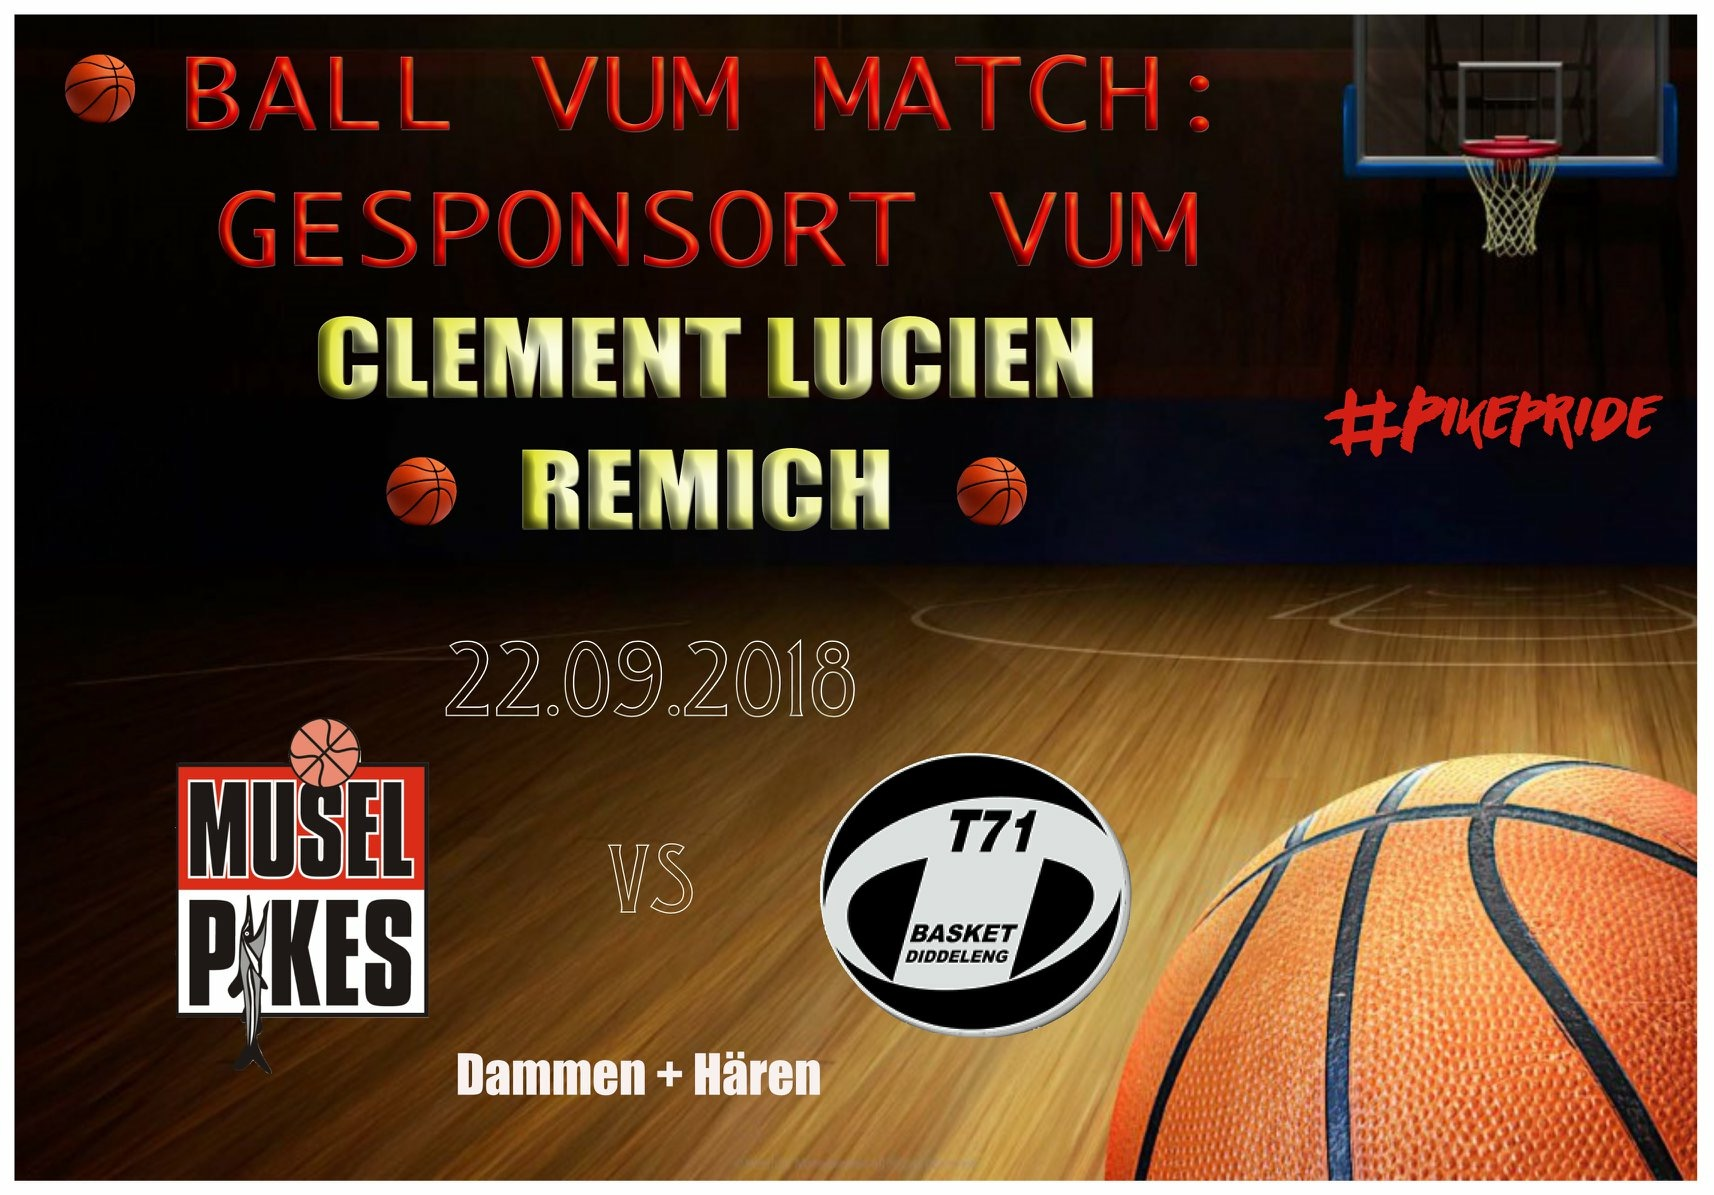 BALL VUM MATCH = CLEMENT LUCIEN